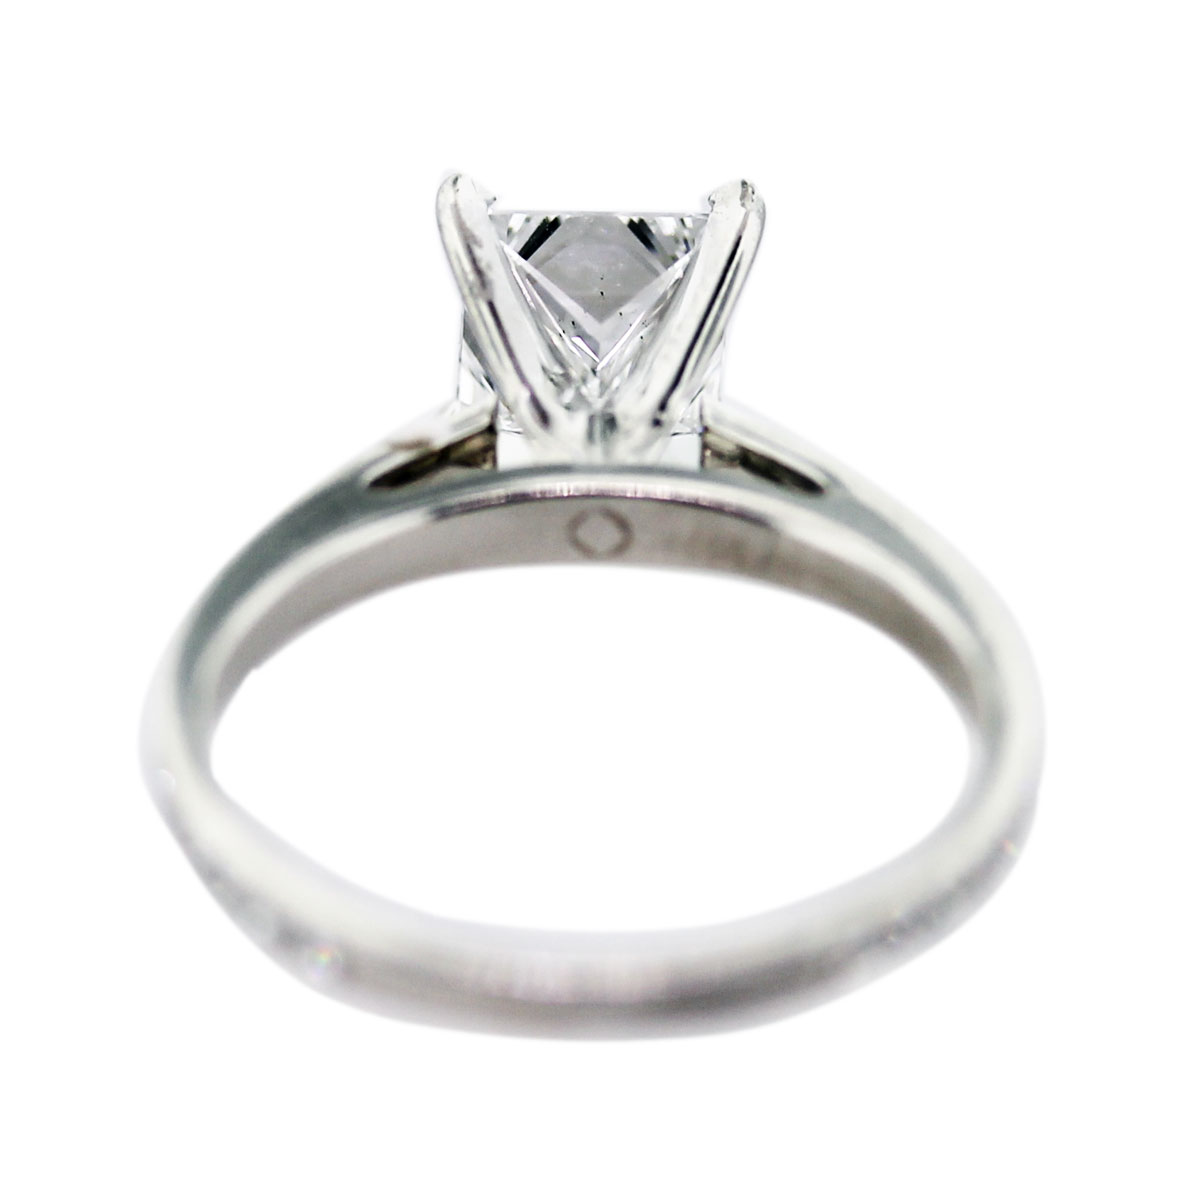 15 Carat Princess Cut Diamond Engagement Ring Back Of Ring